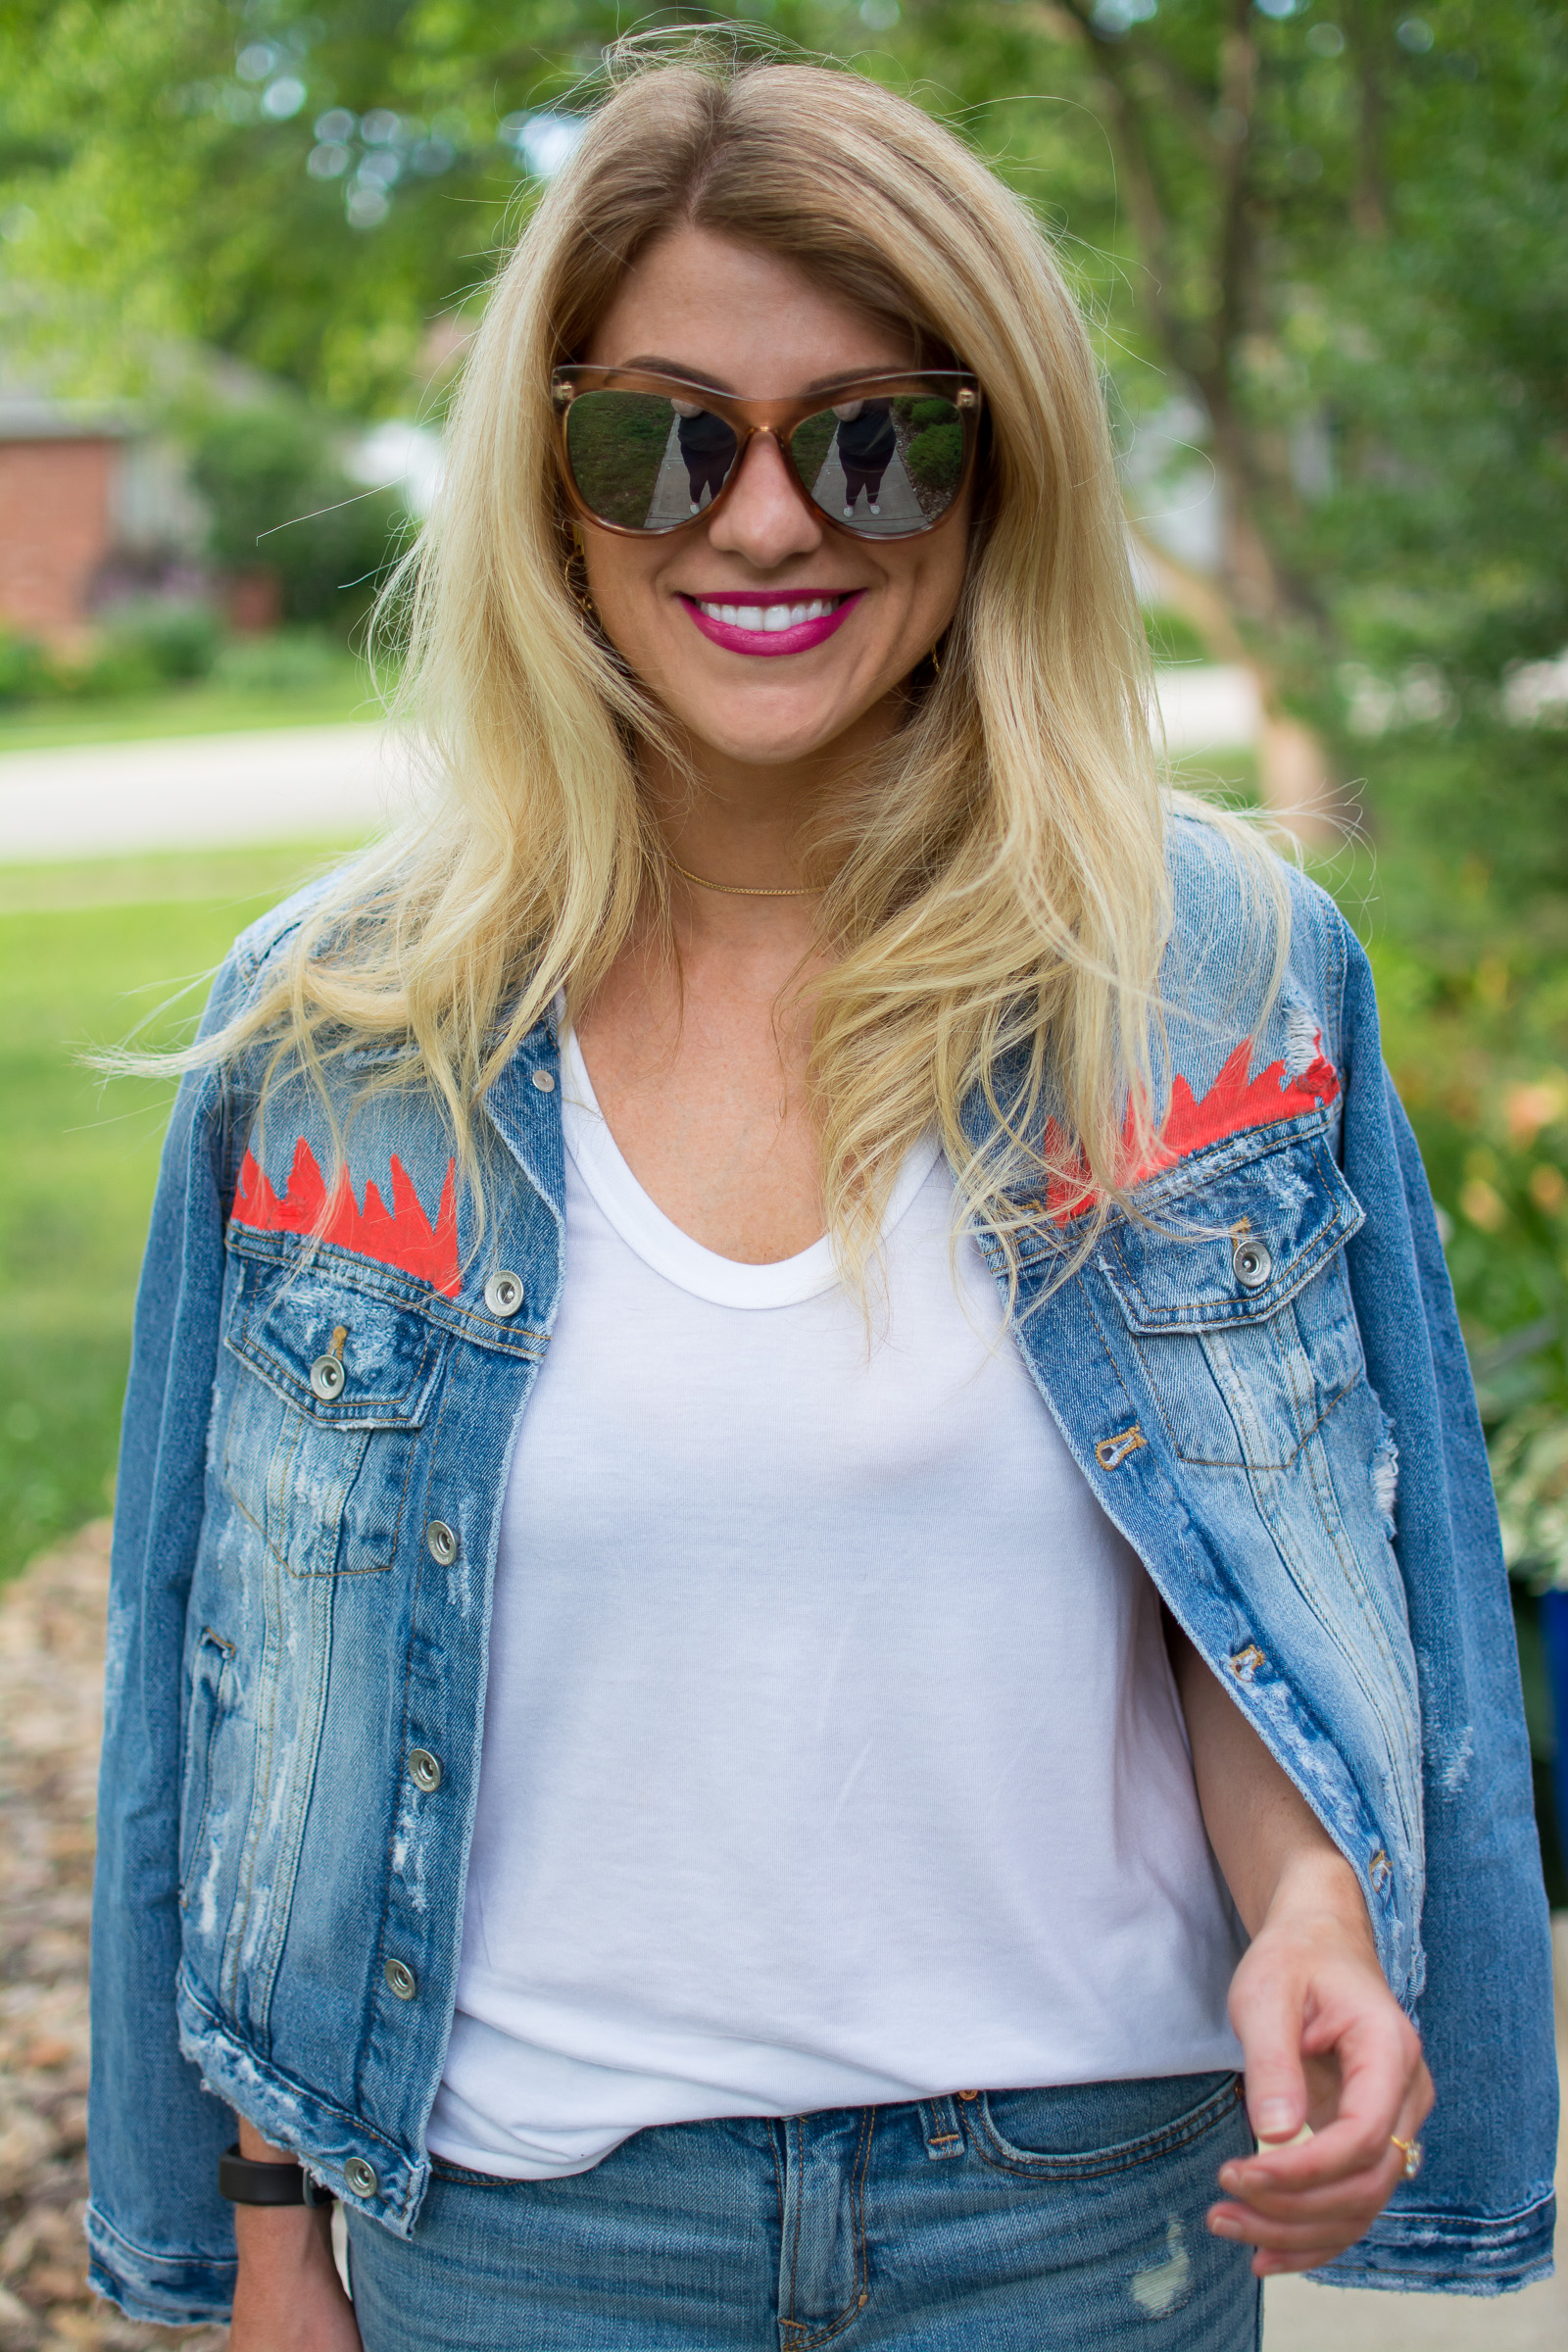 Sassy Denim Jacket. | Ashley from Le Stylo Rouge